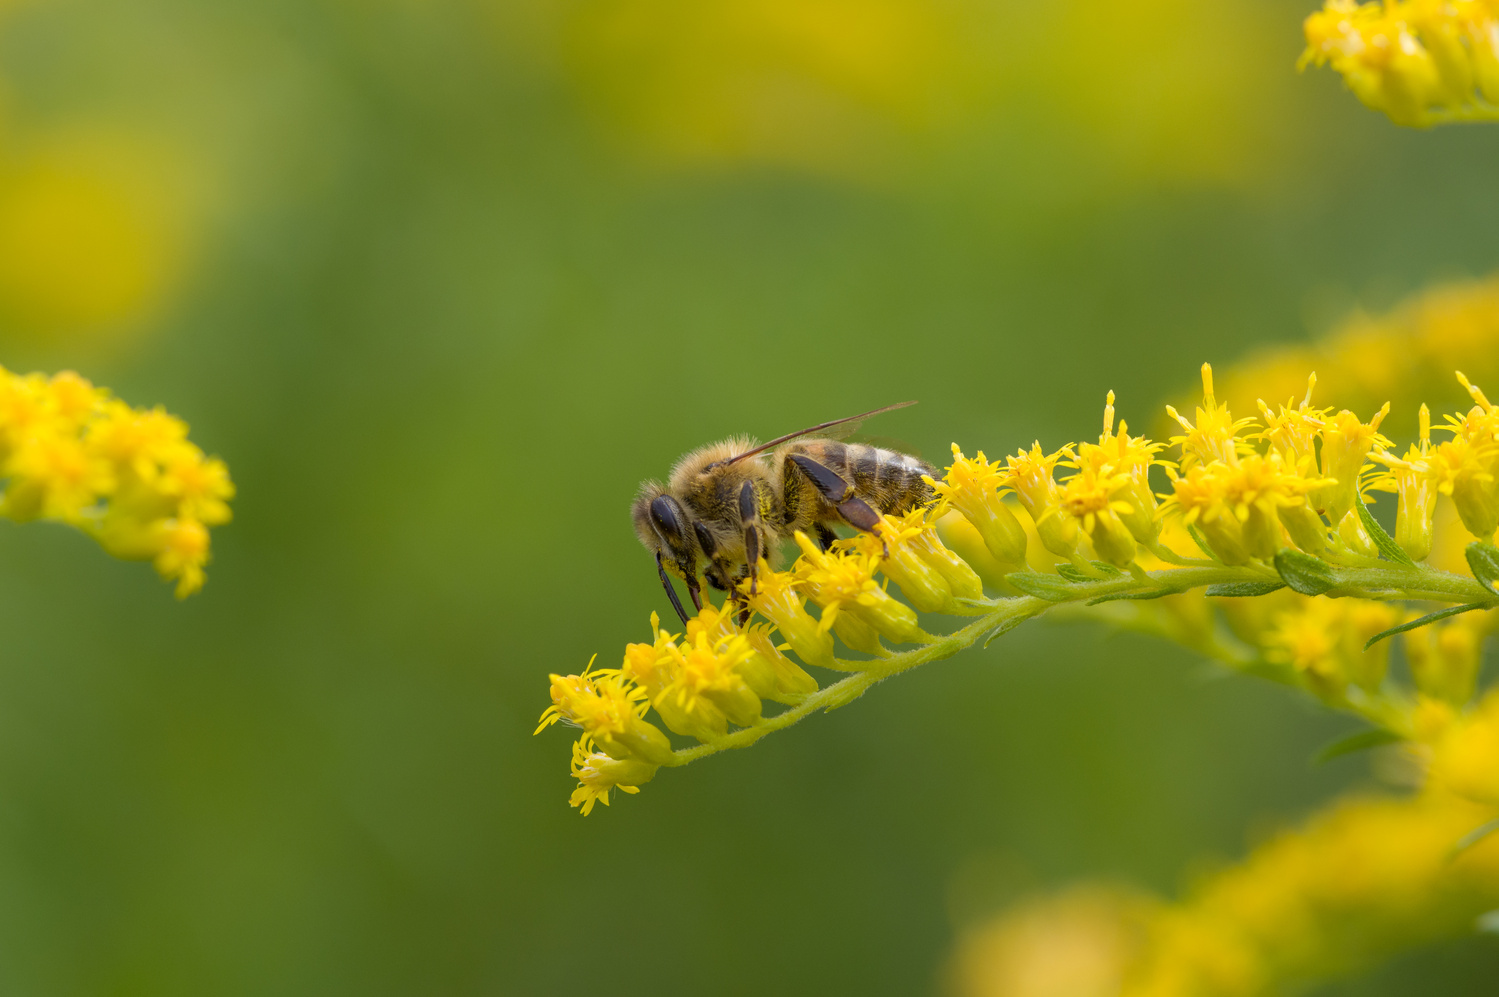 The Bee Photo by Jason Orr